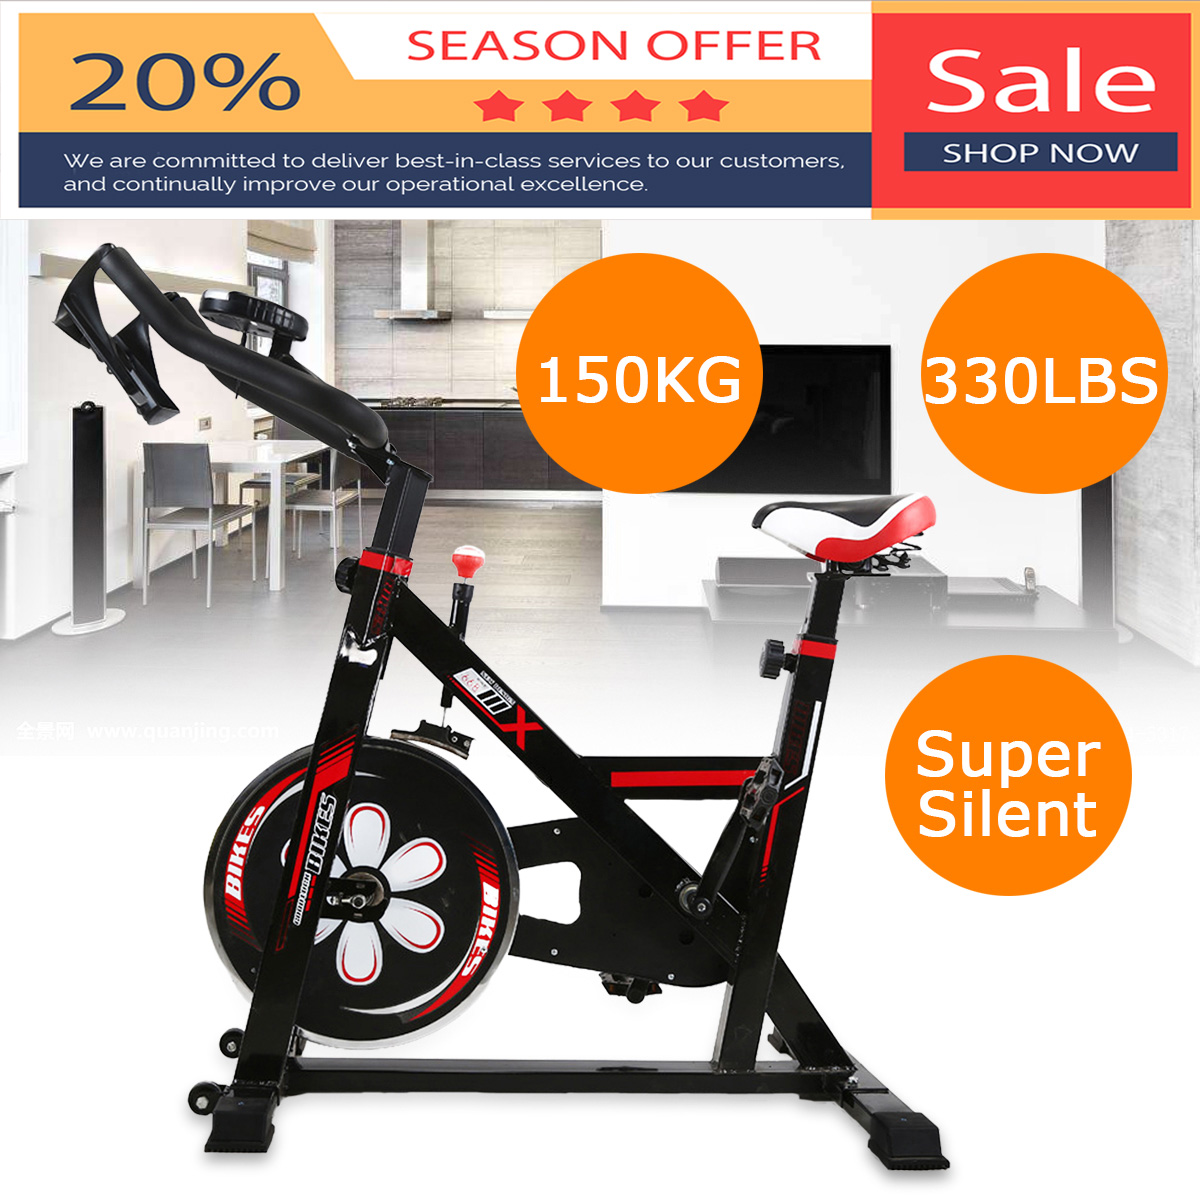 Fitness Bike Indoor Cycling Exercise Equipment With The Electronic Display Screen The Indoor Cycling Ultra-Quiet Bicycle Trainer fitness bike indoor cycling exercise equipment with the electronic display screen the indoor cycling ultra quiet bicycle trainer